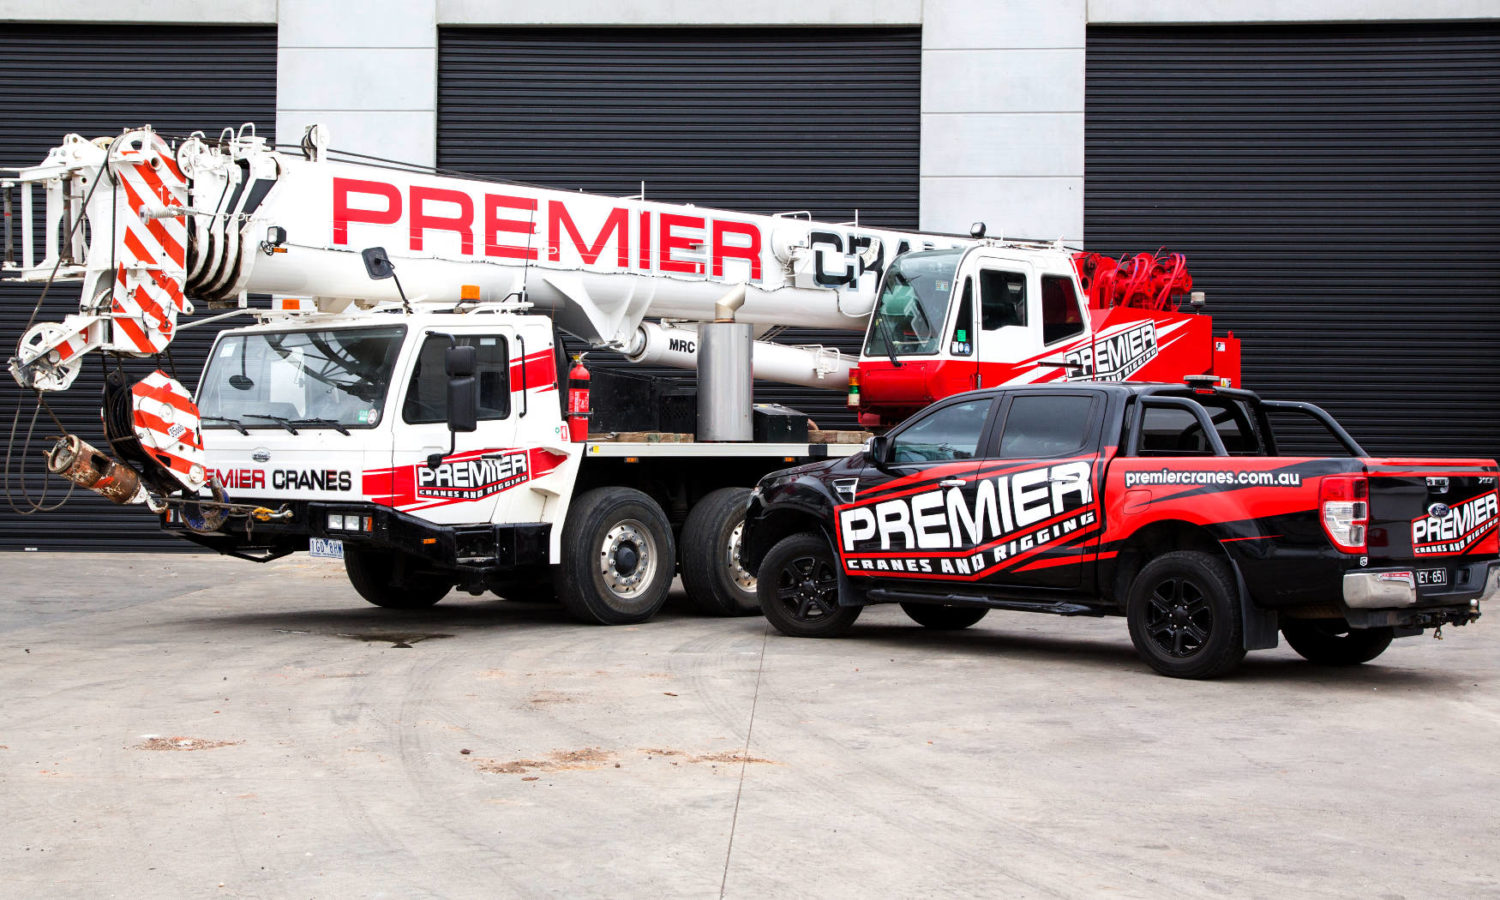 Premier Cranes vehicles